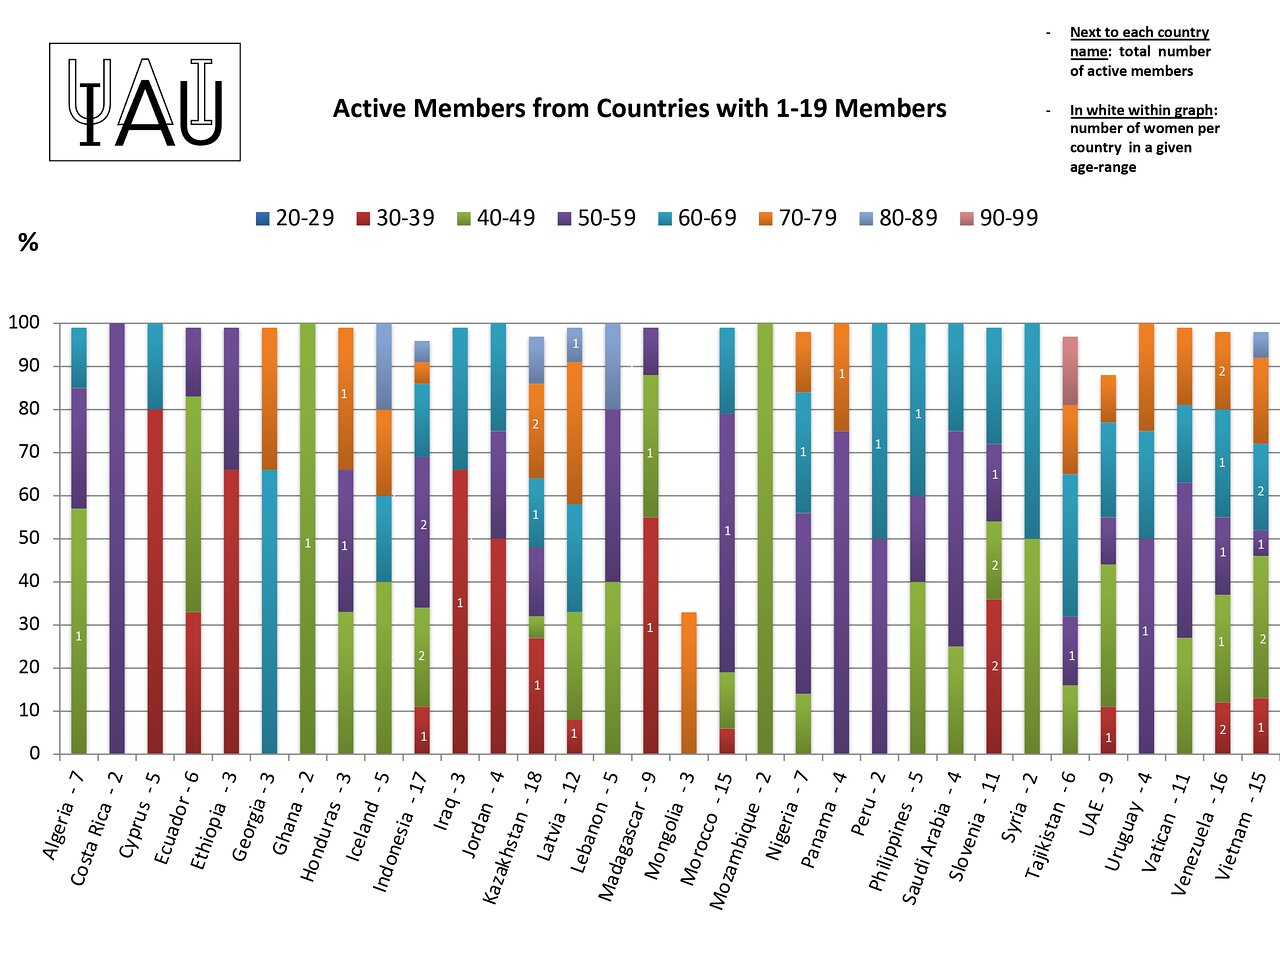 Active members from countries with 1-19 members